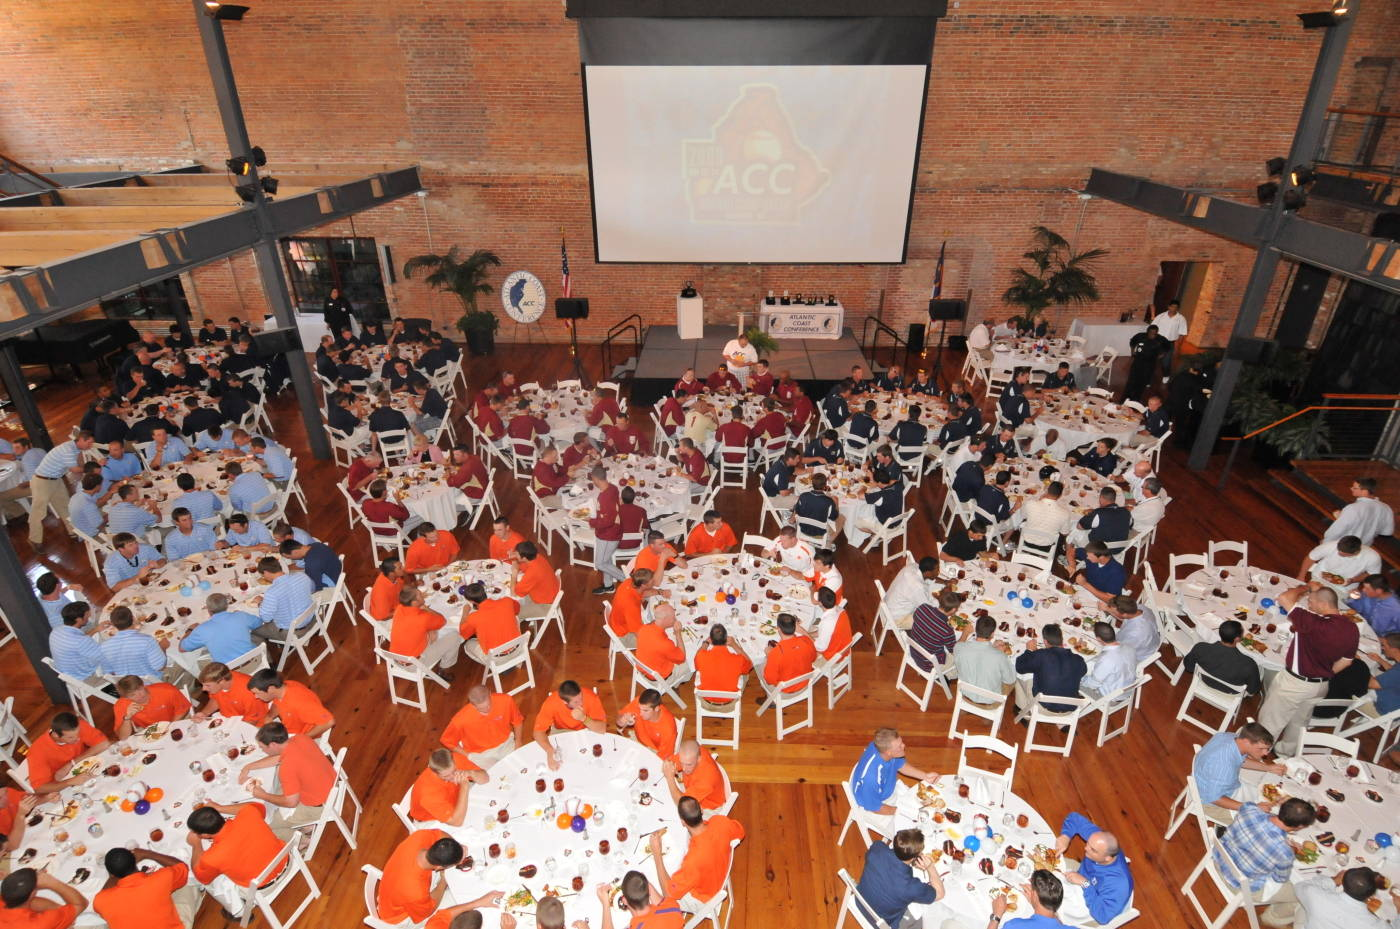 The tournament field for the 2009 ACC Baseball Championship at the lead-off banquet